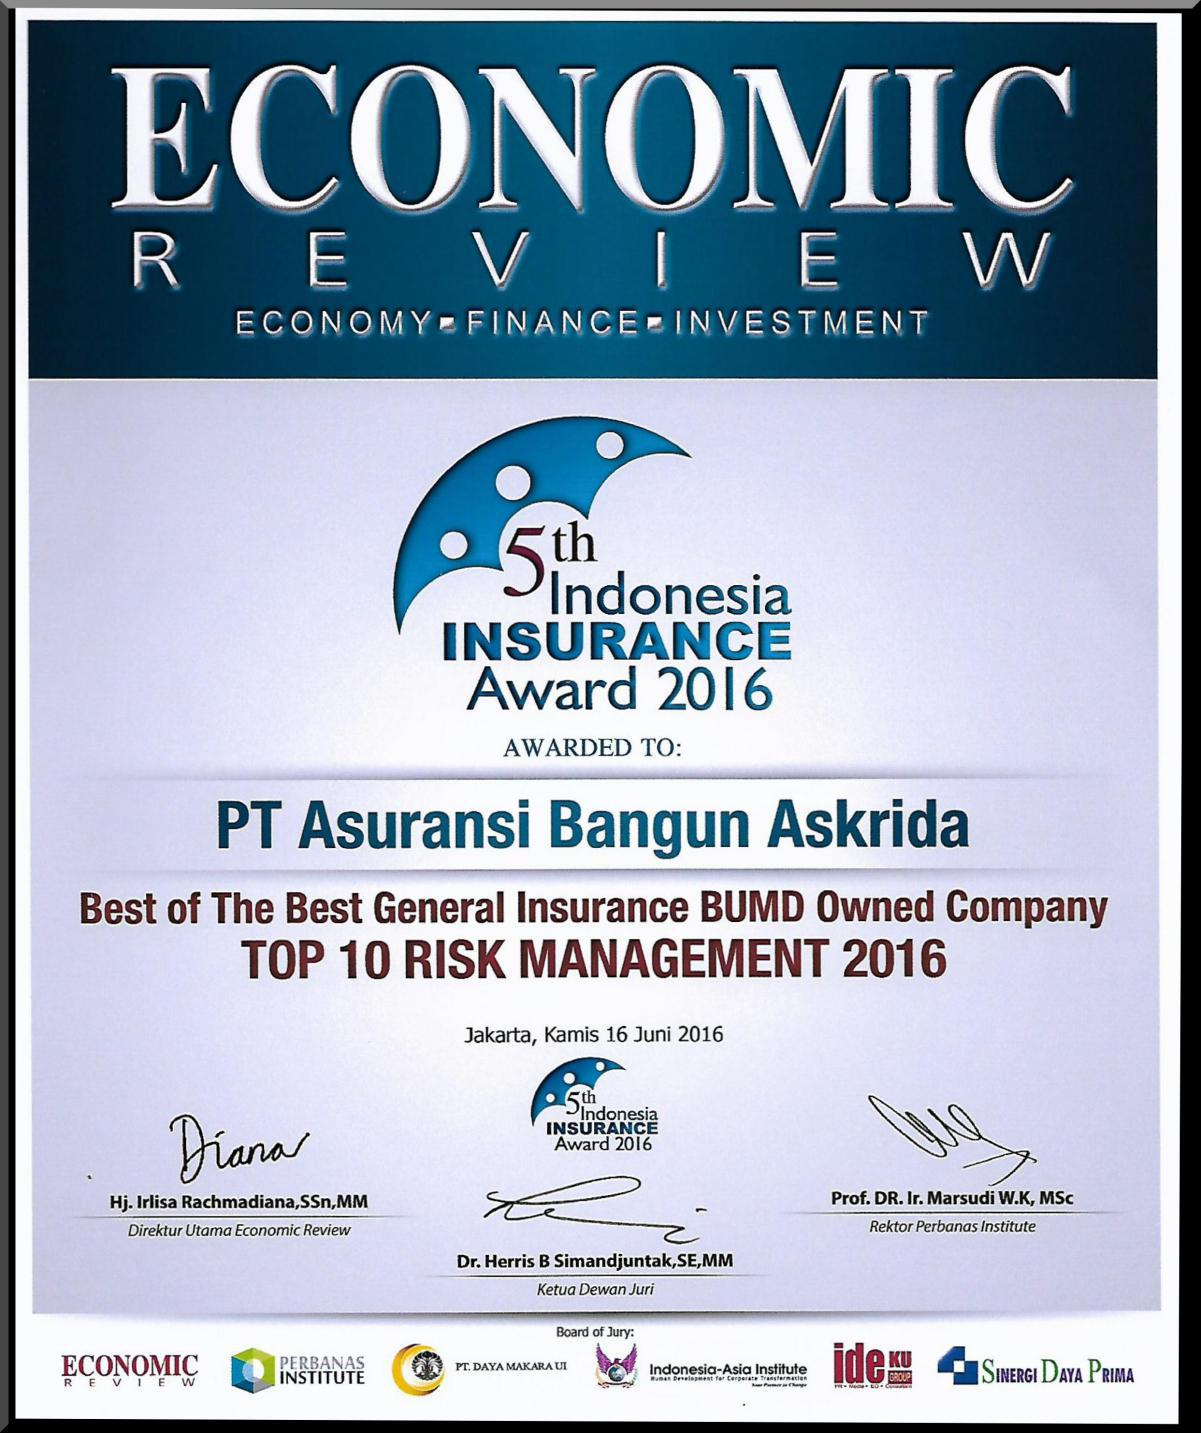 PENGHARGAAN TOP 10 RISK MANAGEMENT 2016 (ECONOMIC REVIEWS)